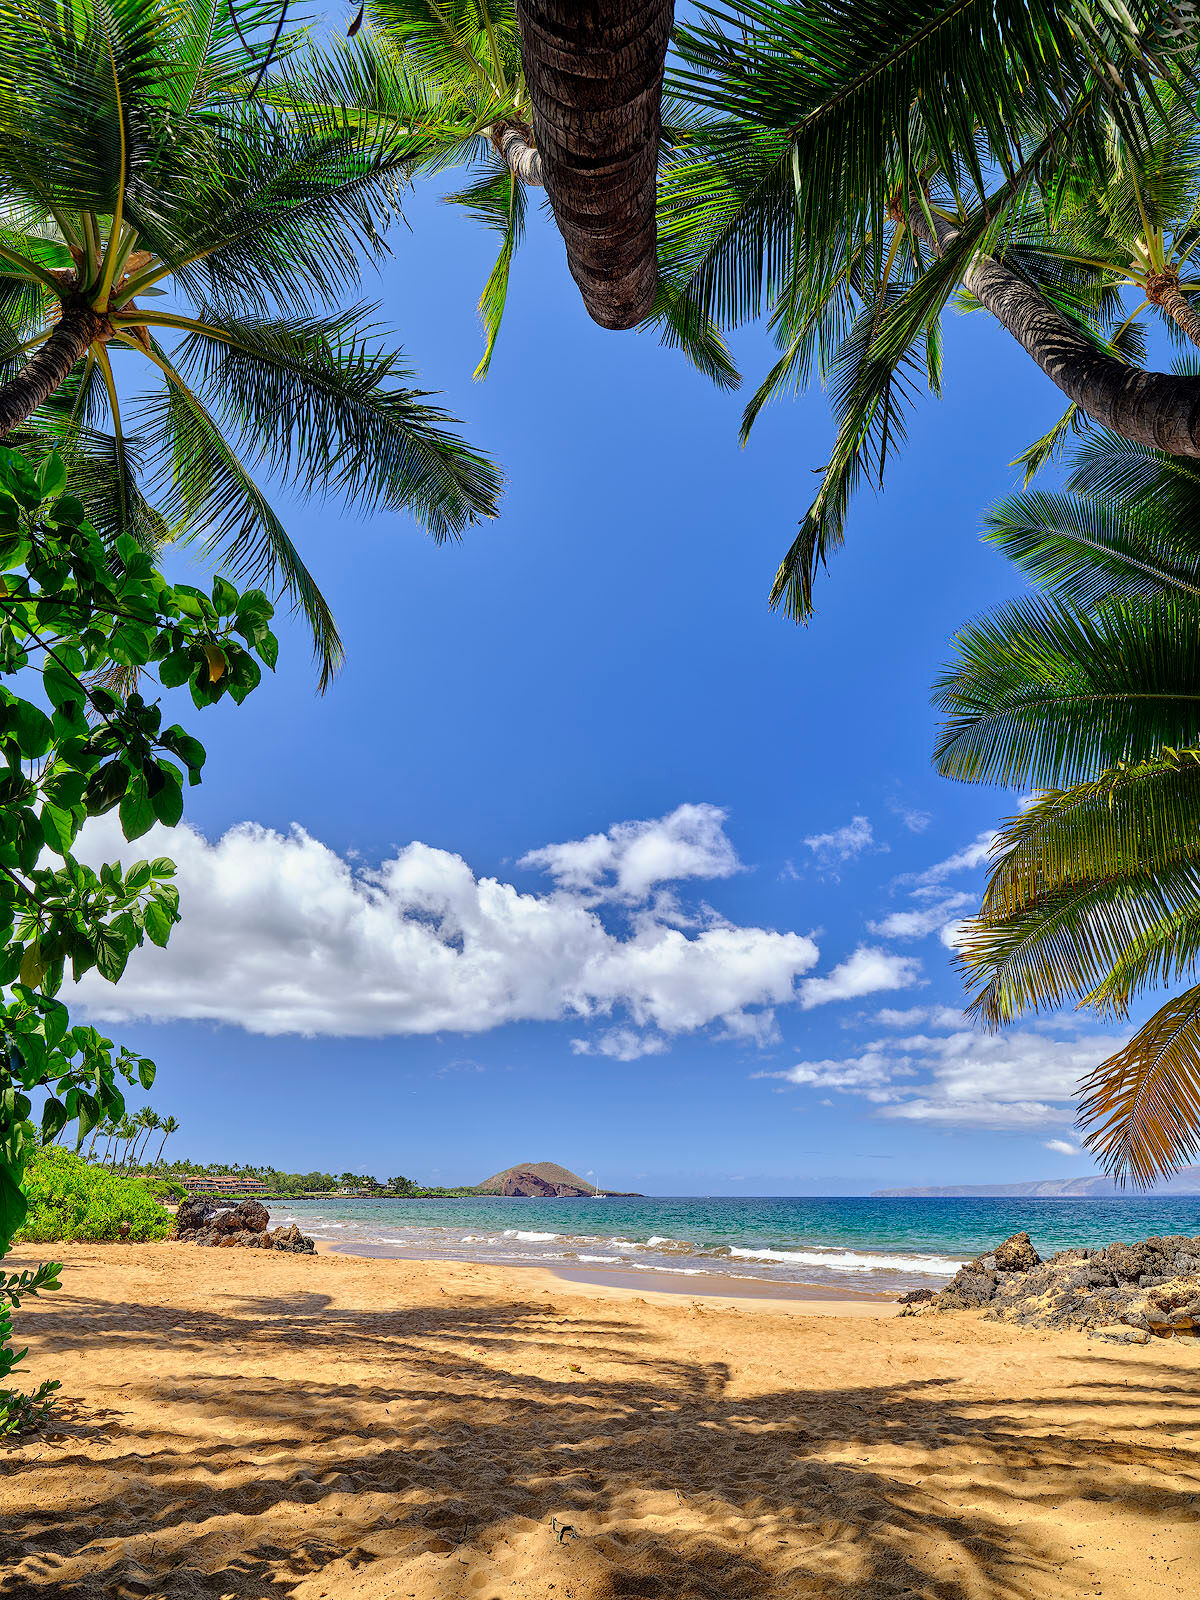 looking out of a palm tree cave in Makena/Wailea out to the beach and ocean.  Hawaii photography by Andrew Shoemaker